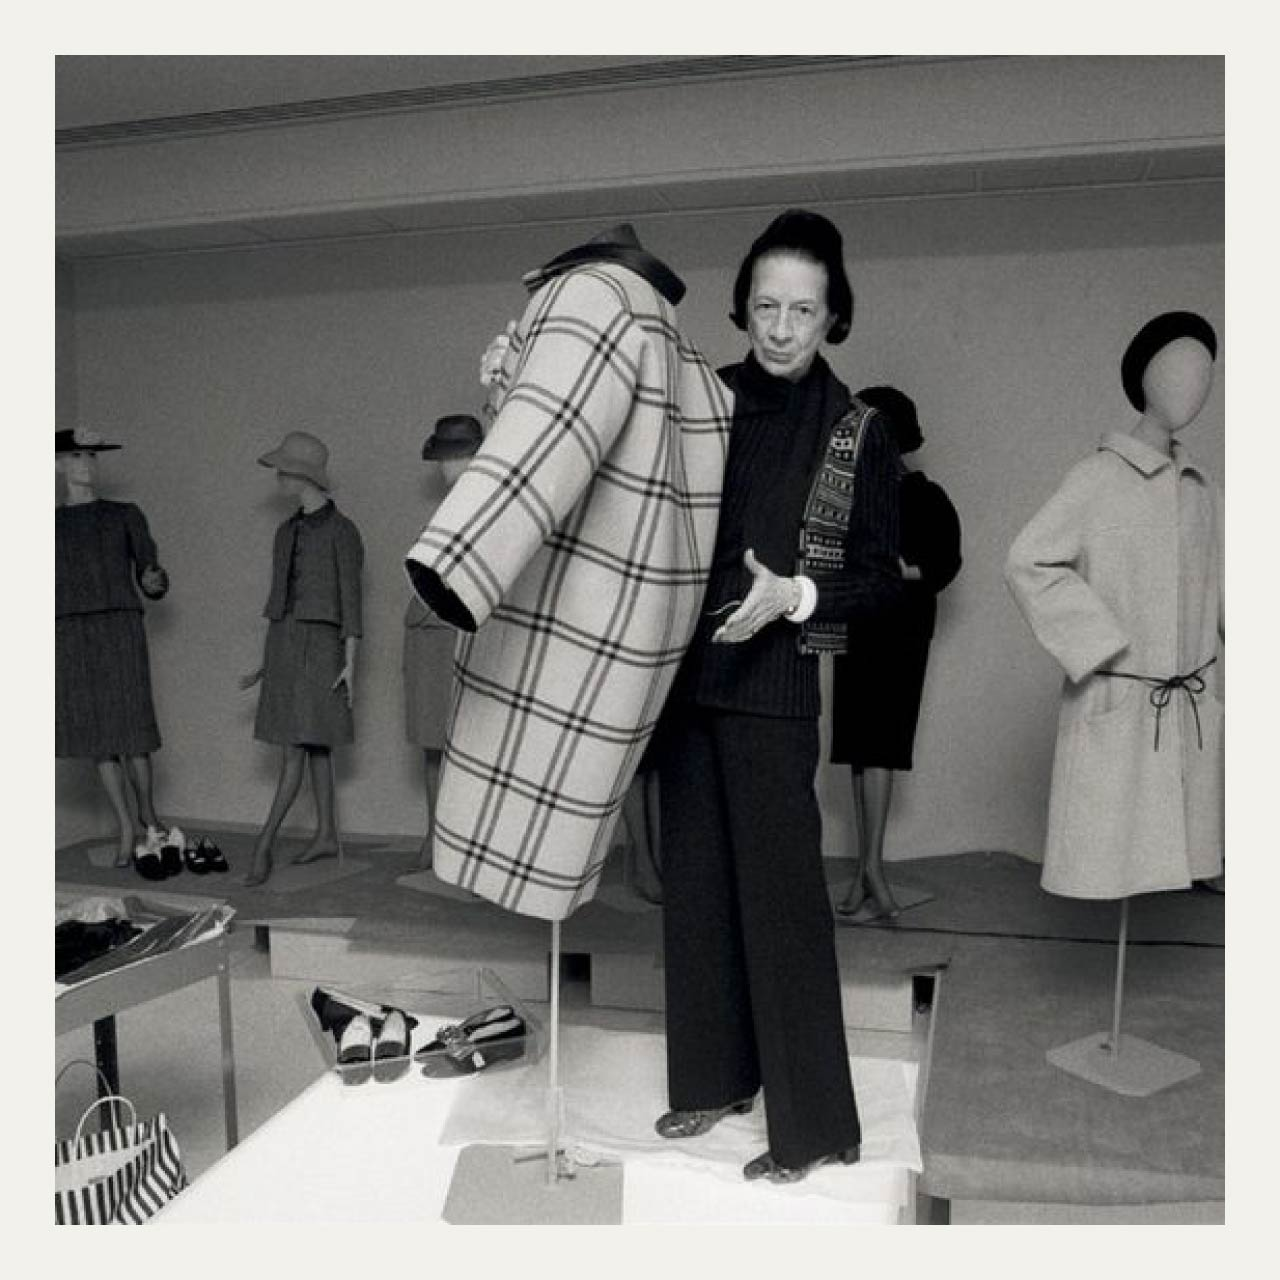 Couture Sensibilities at Botter and Nina Ricci | The Cutting Class. Diana Vreeland at a Balenciaga exhibition 1973.